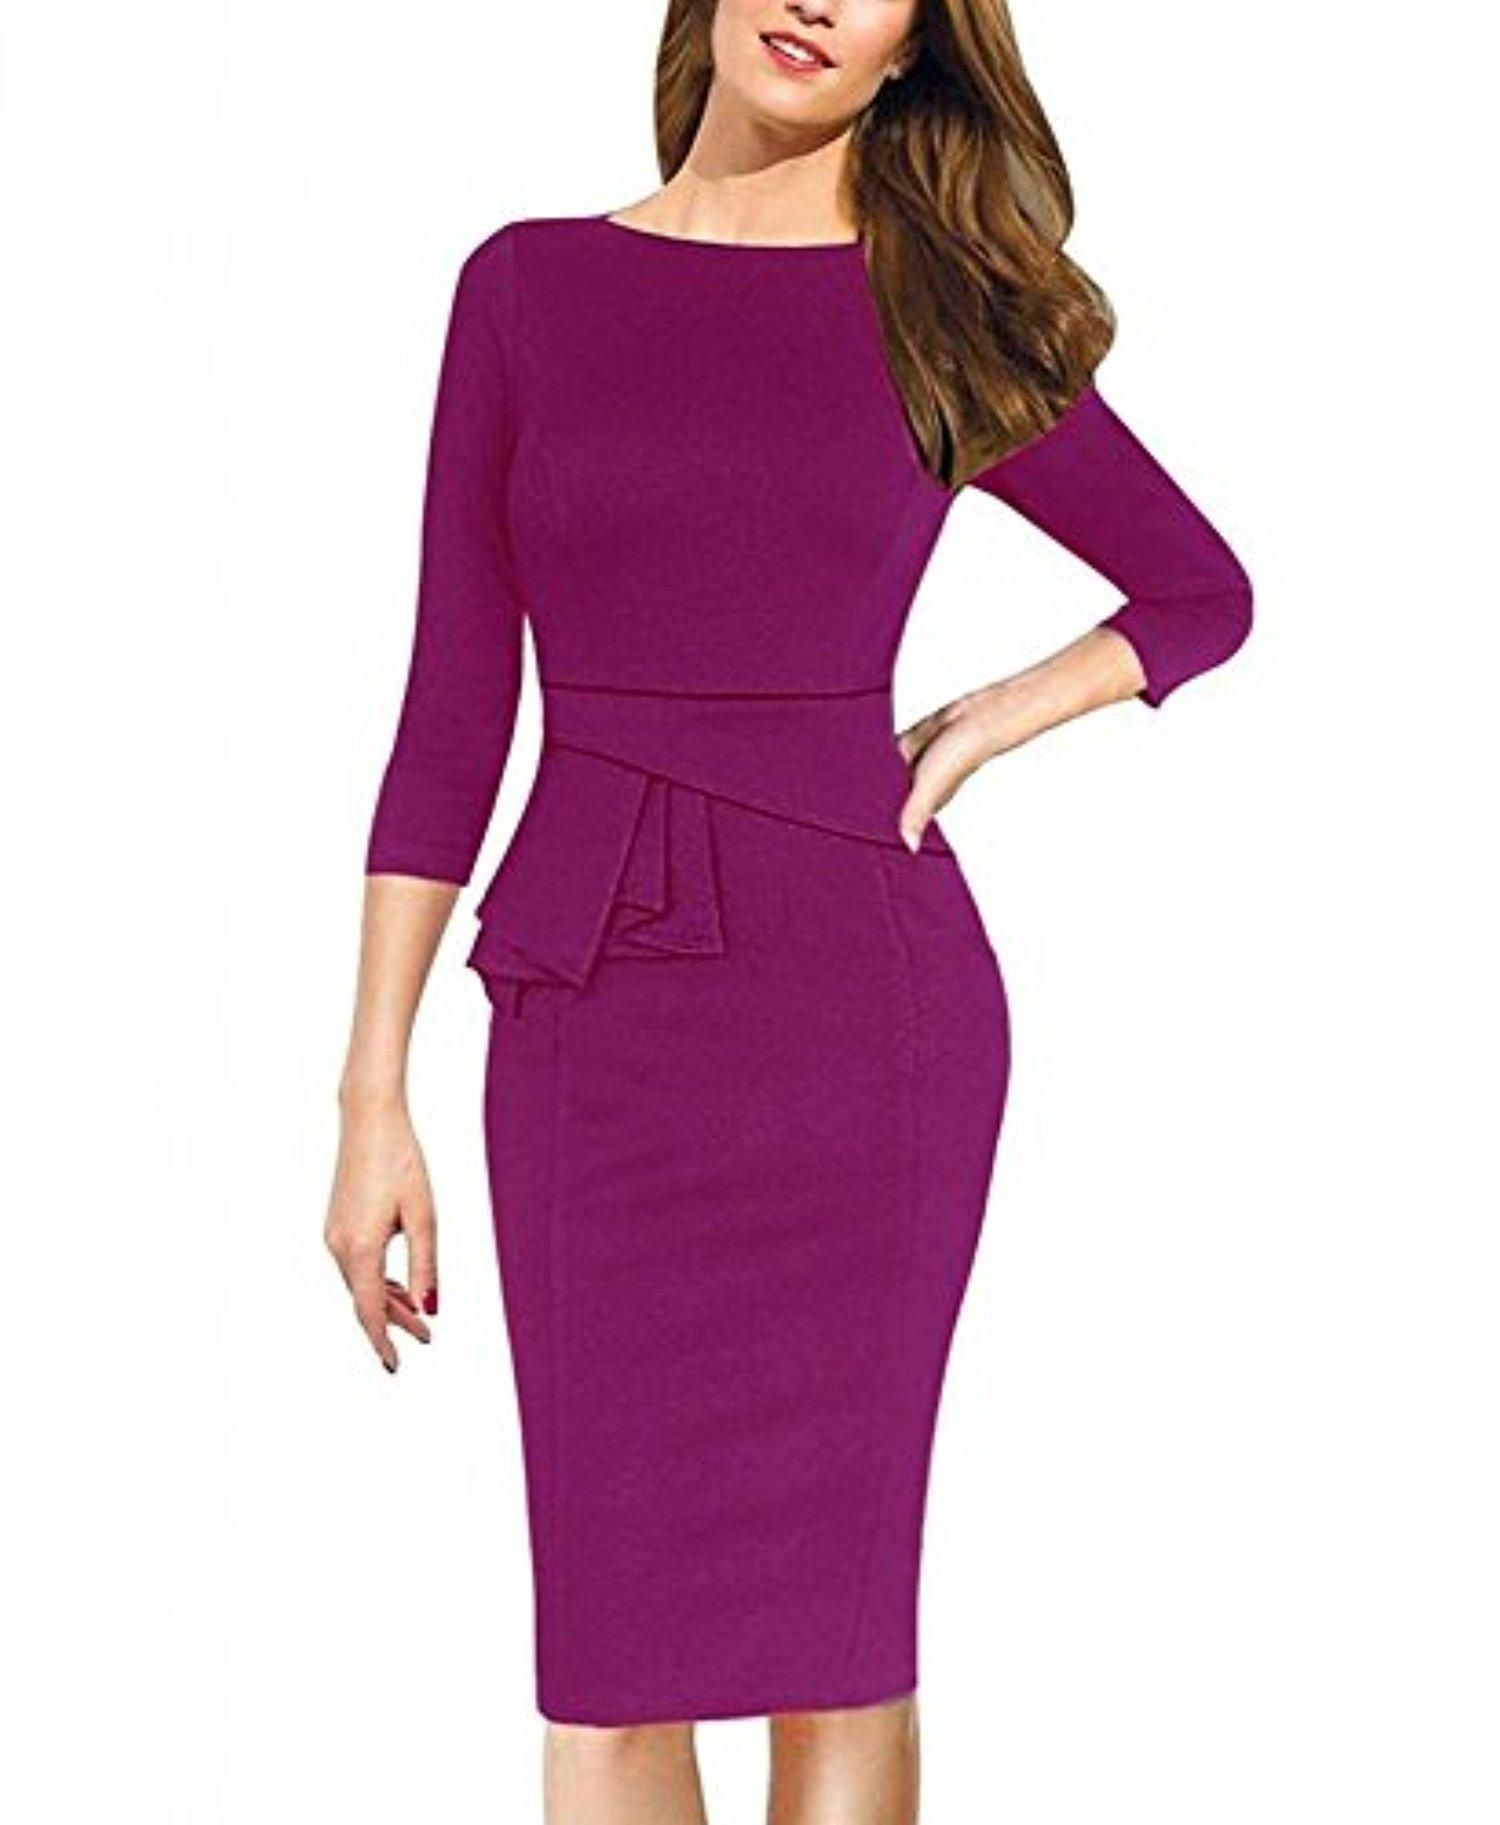 REPHYLLIS Women 3/4 Sleeve OL Business Working Casual Cocktail ...